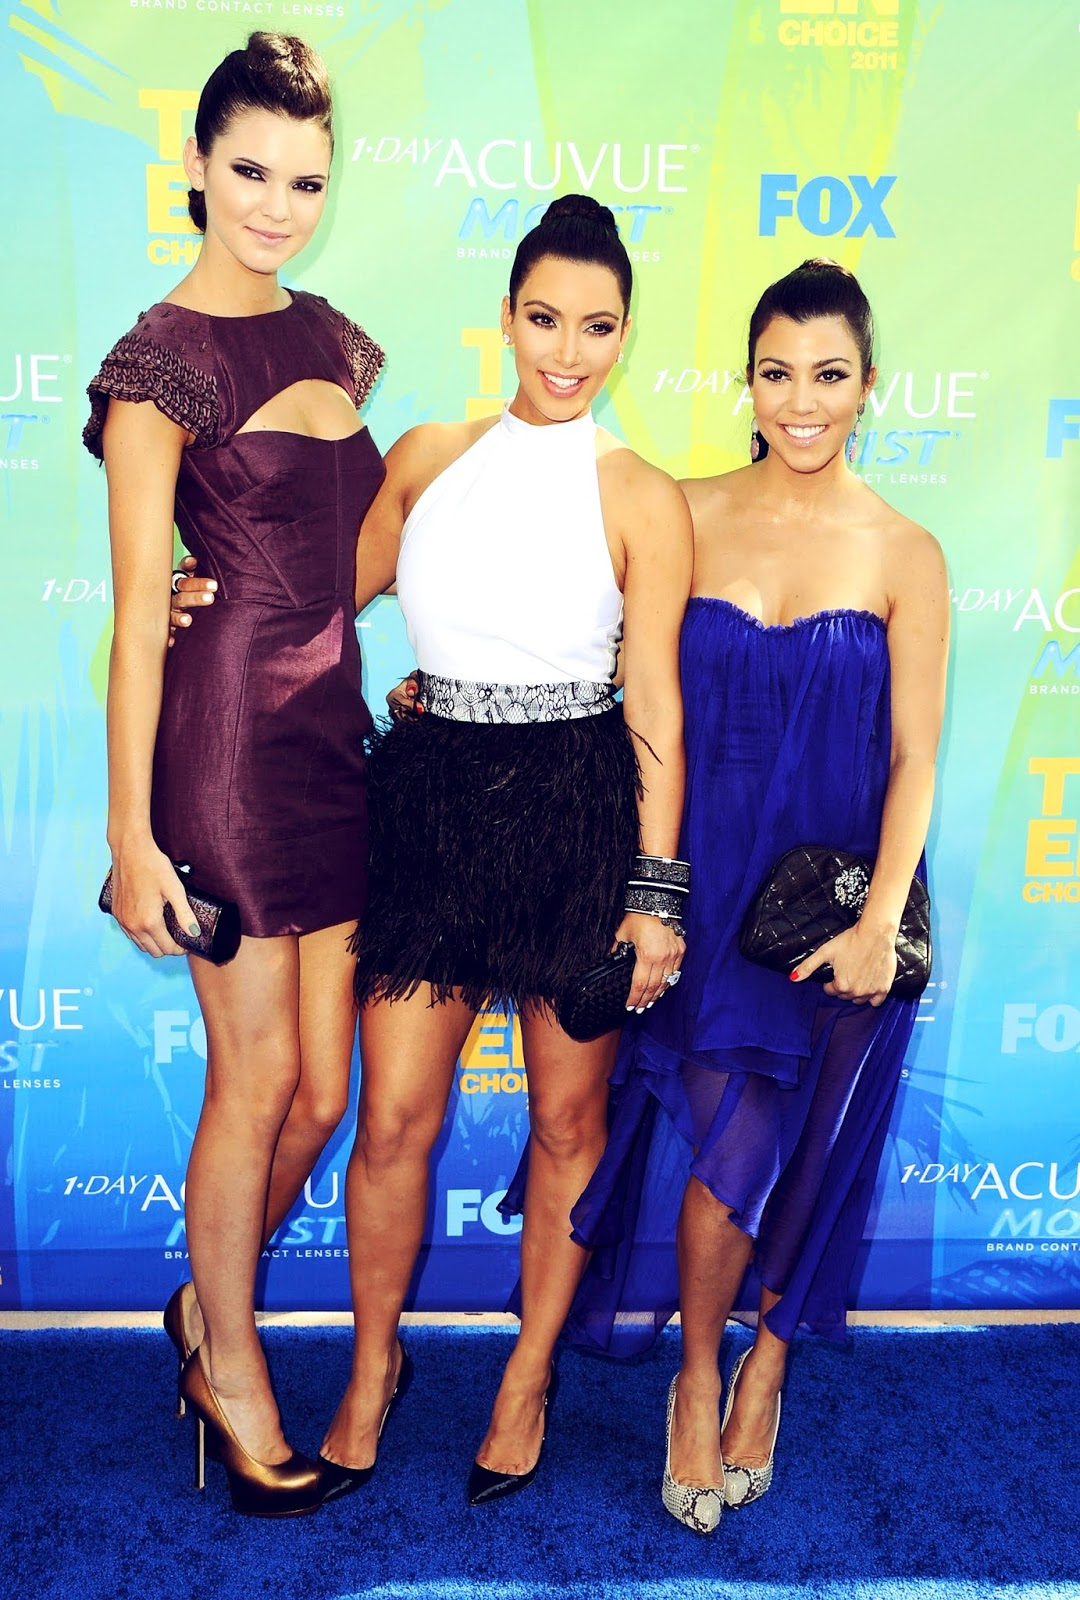 22 - Teen Choice Awards in August 11, 2011